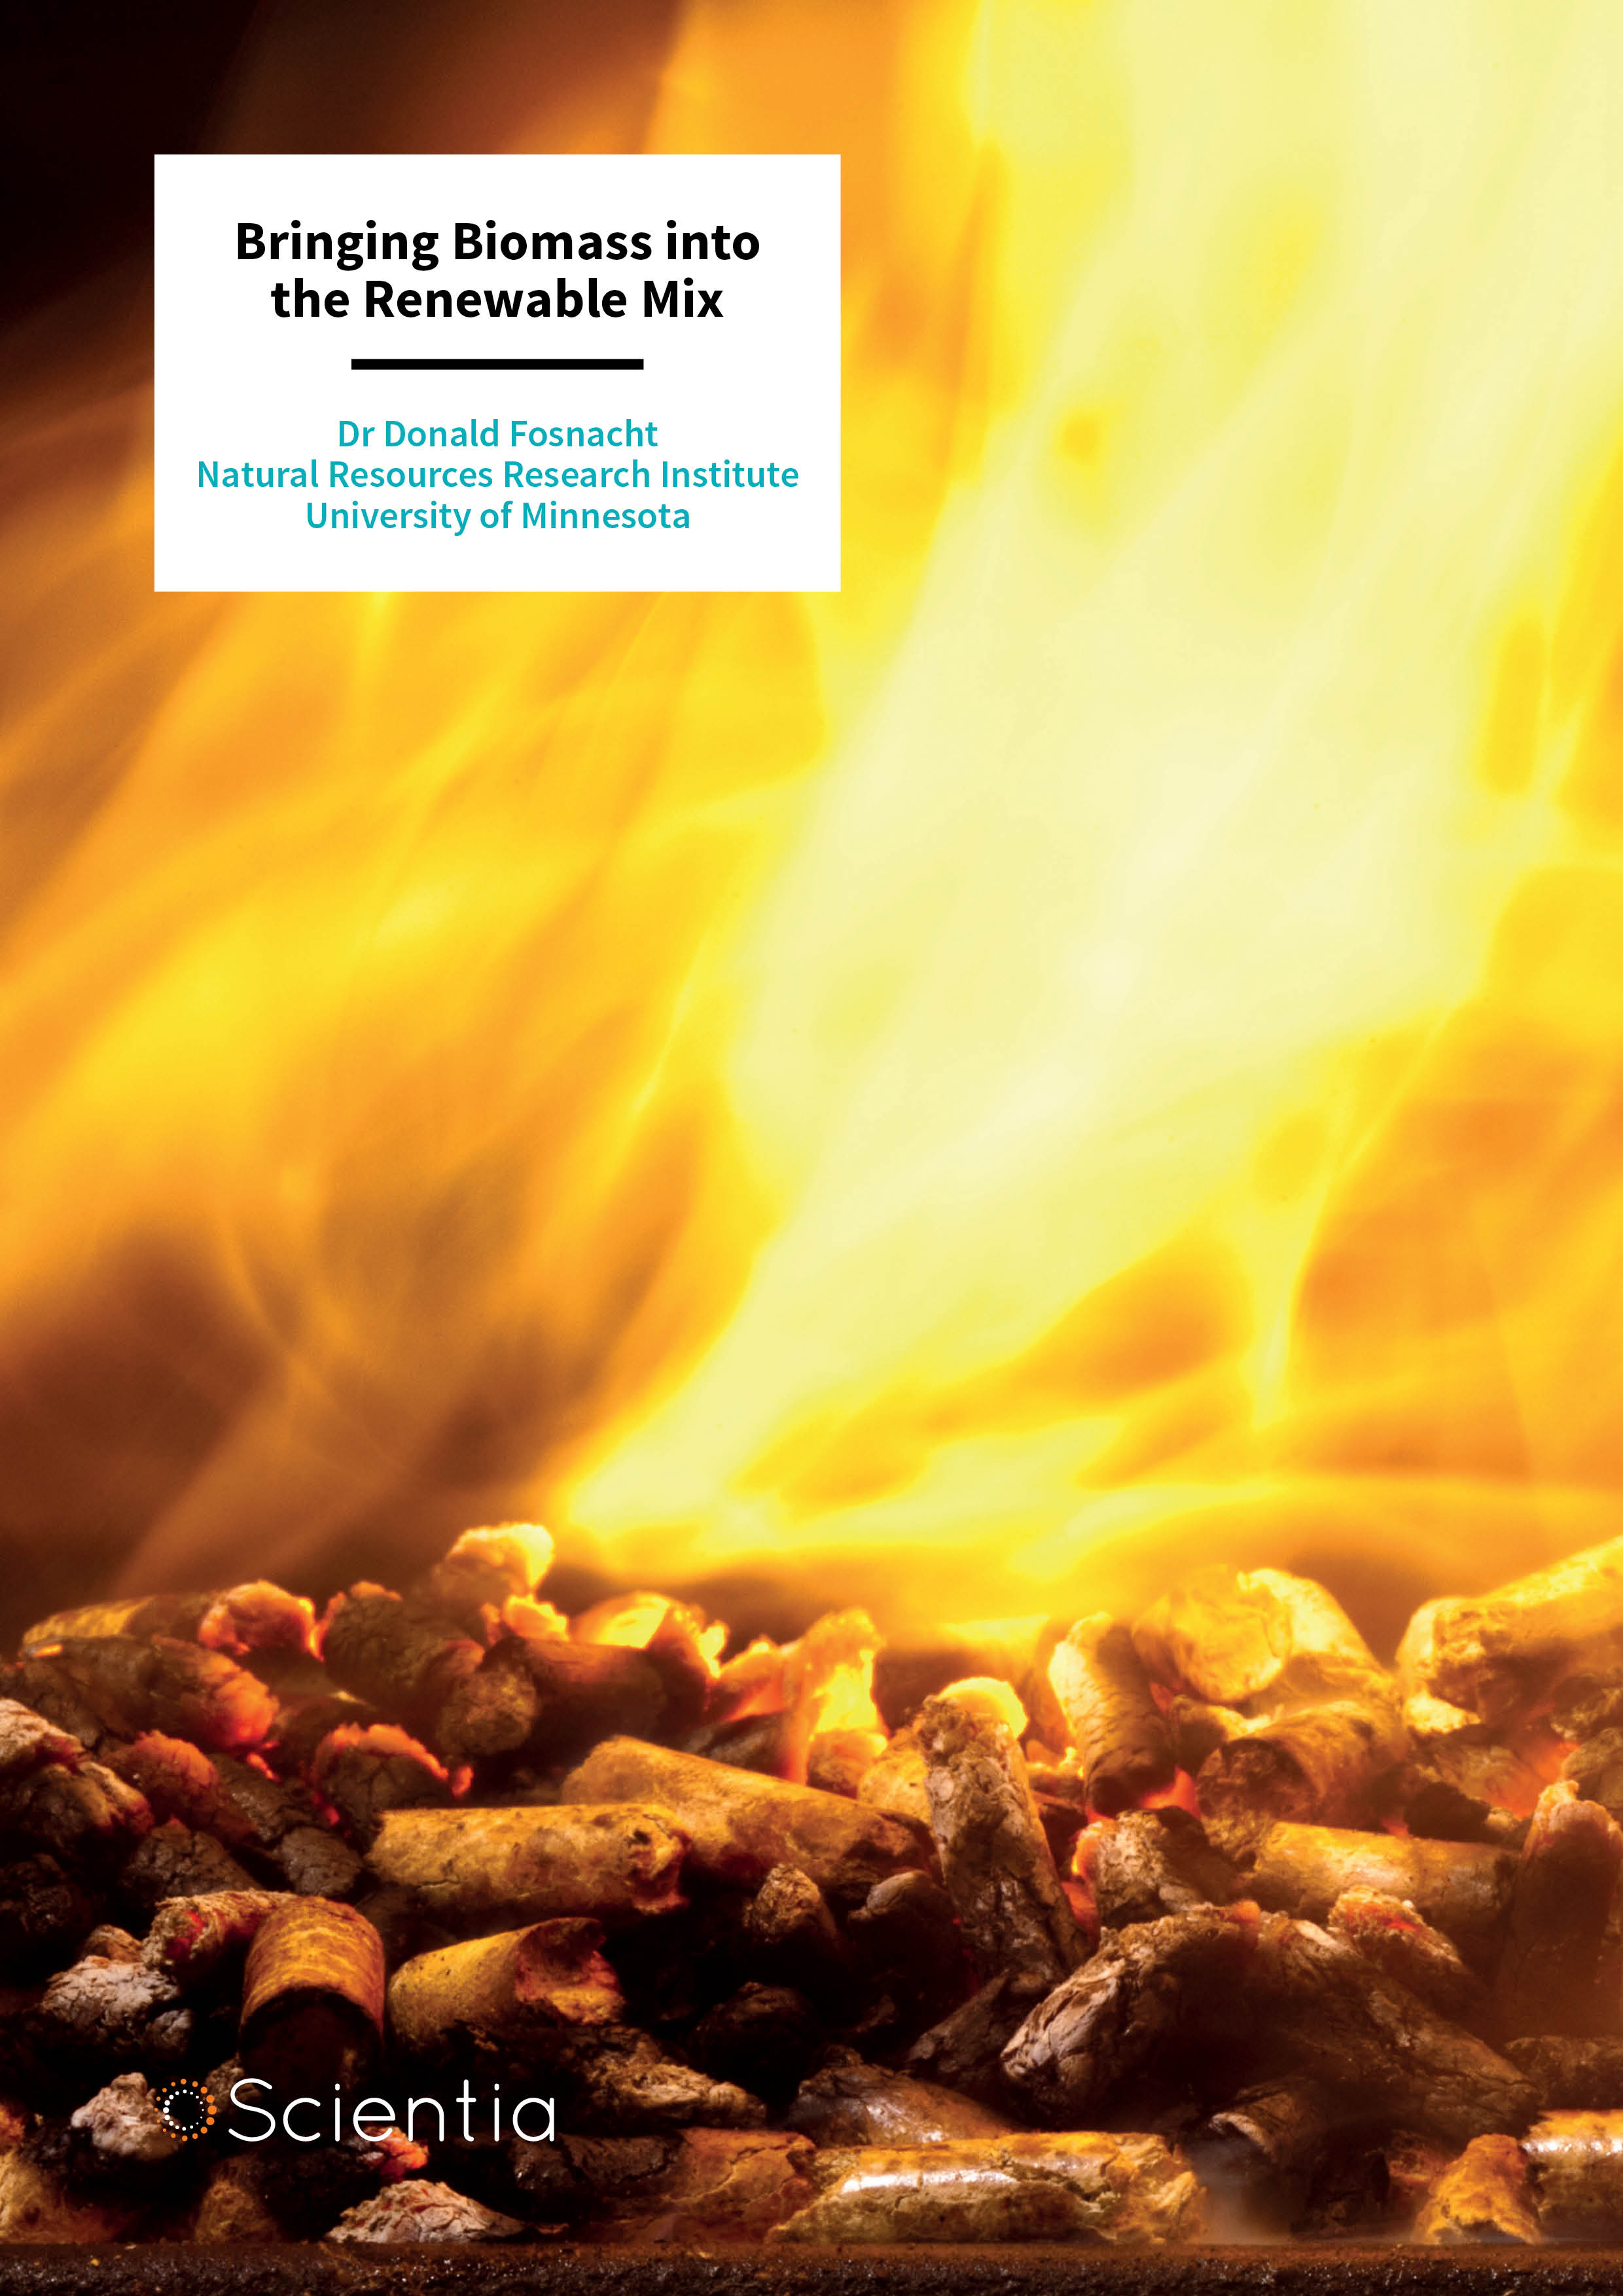 Dr Donald Fosnacht – Bringing Biomass into the Renewable Mix